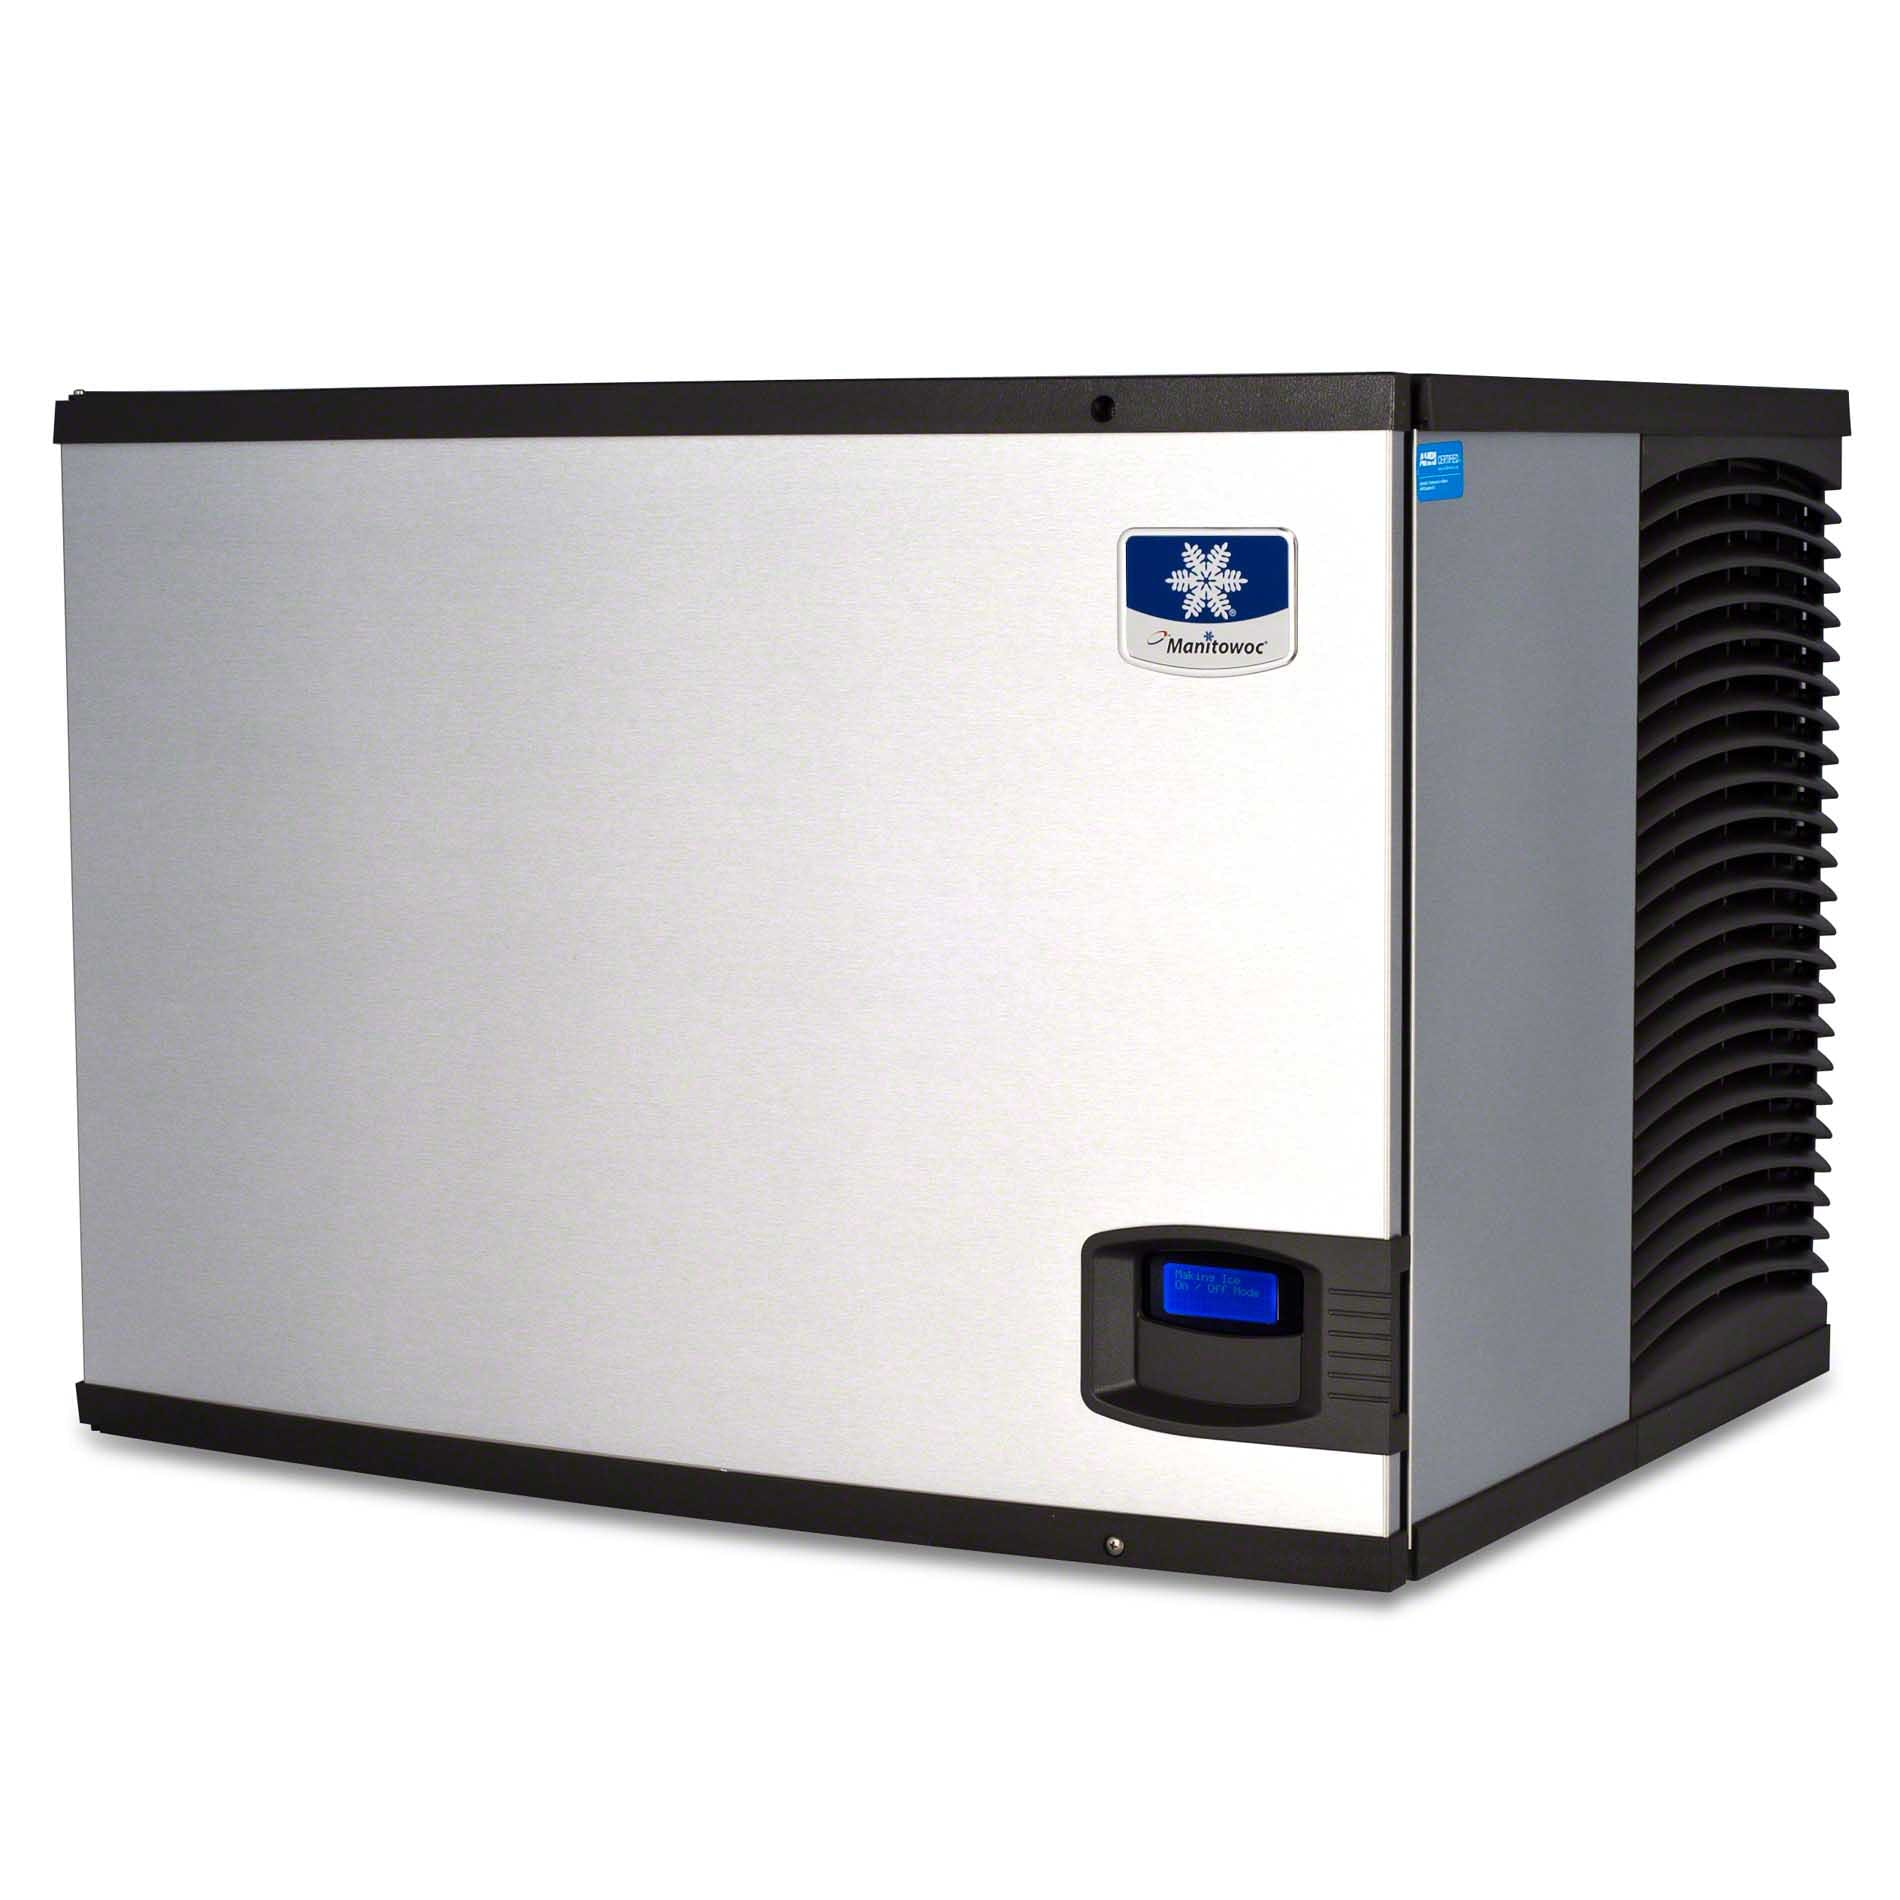 Manitowoc - IY-0594N 510 lb Half Size Cube Ice Machine - Indigo Series - sold by Food Service Warehouse